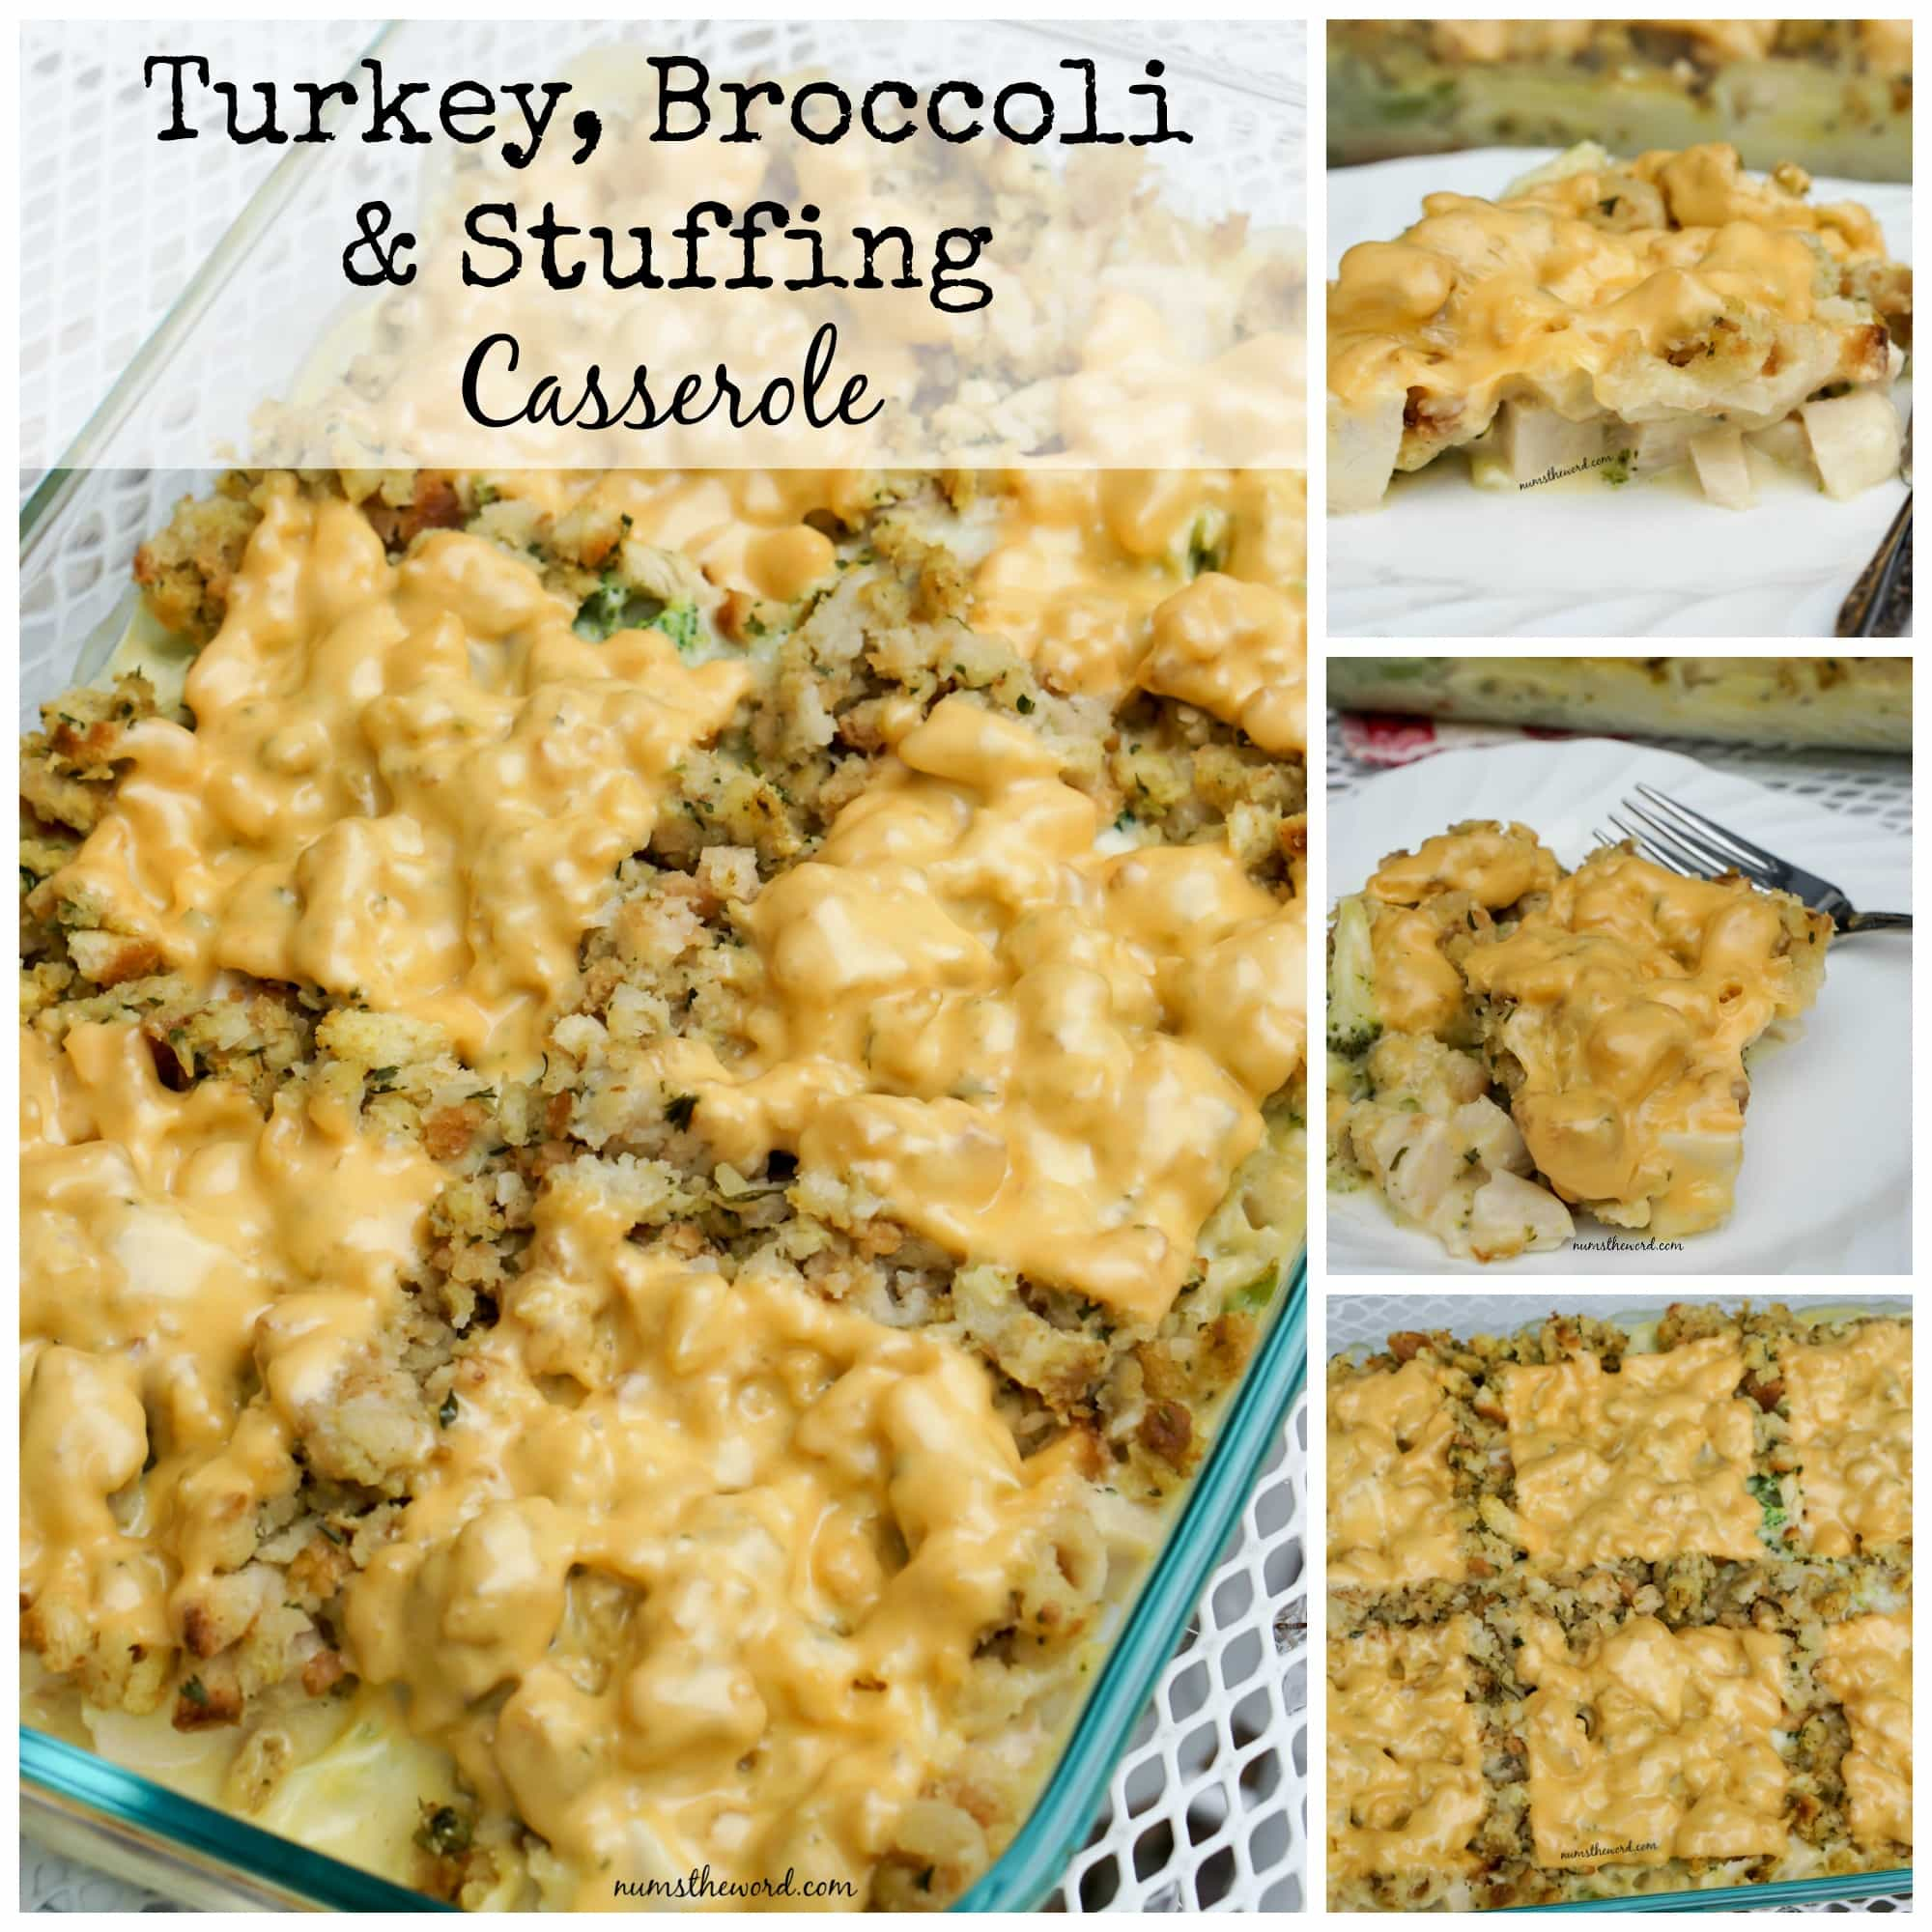 Turkey, Broccoli & Stuffing Casserole - Collage of images for Facebook